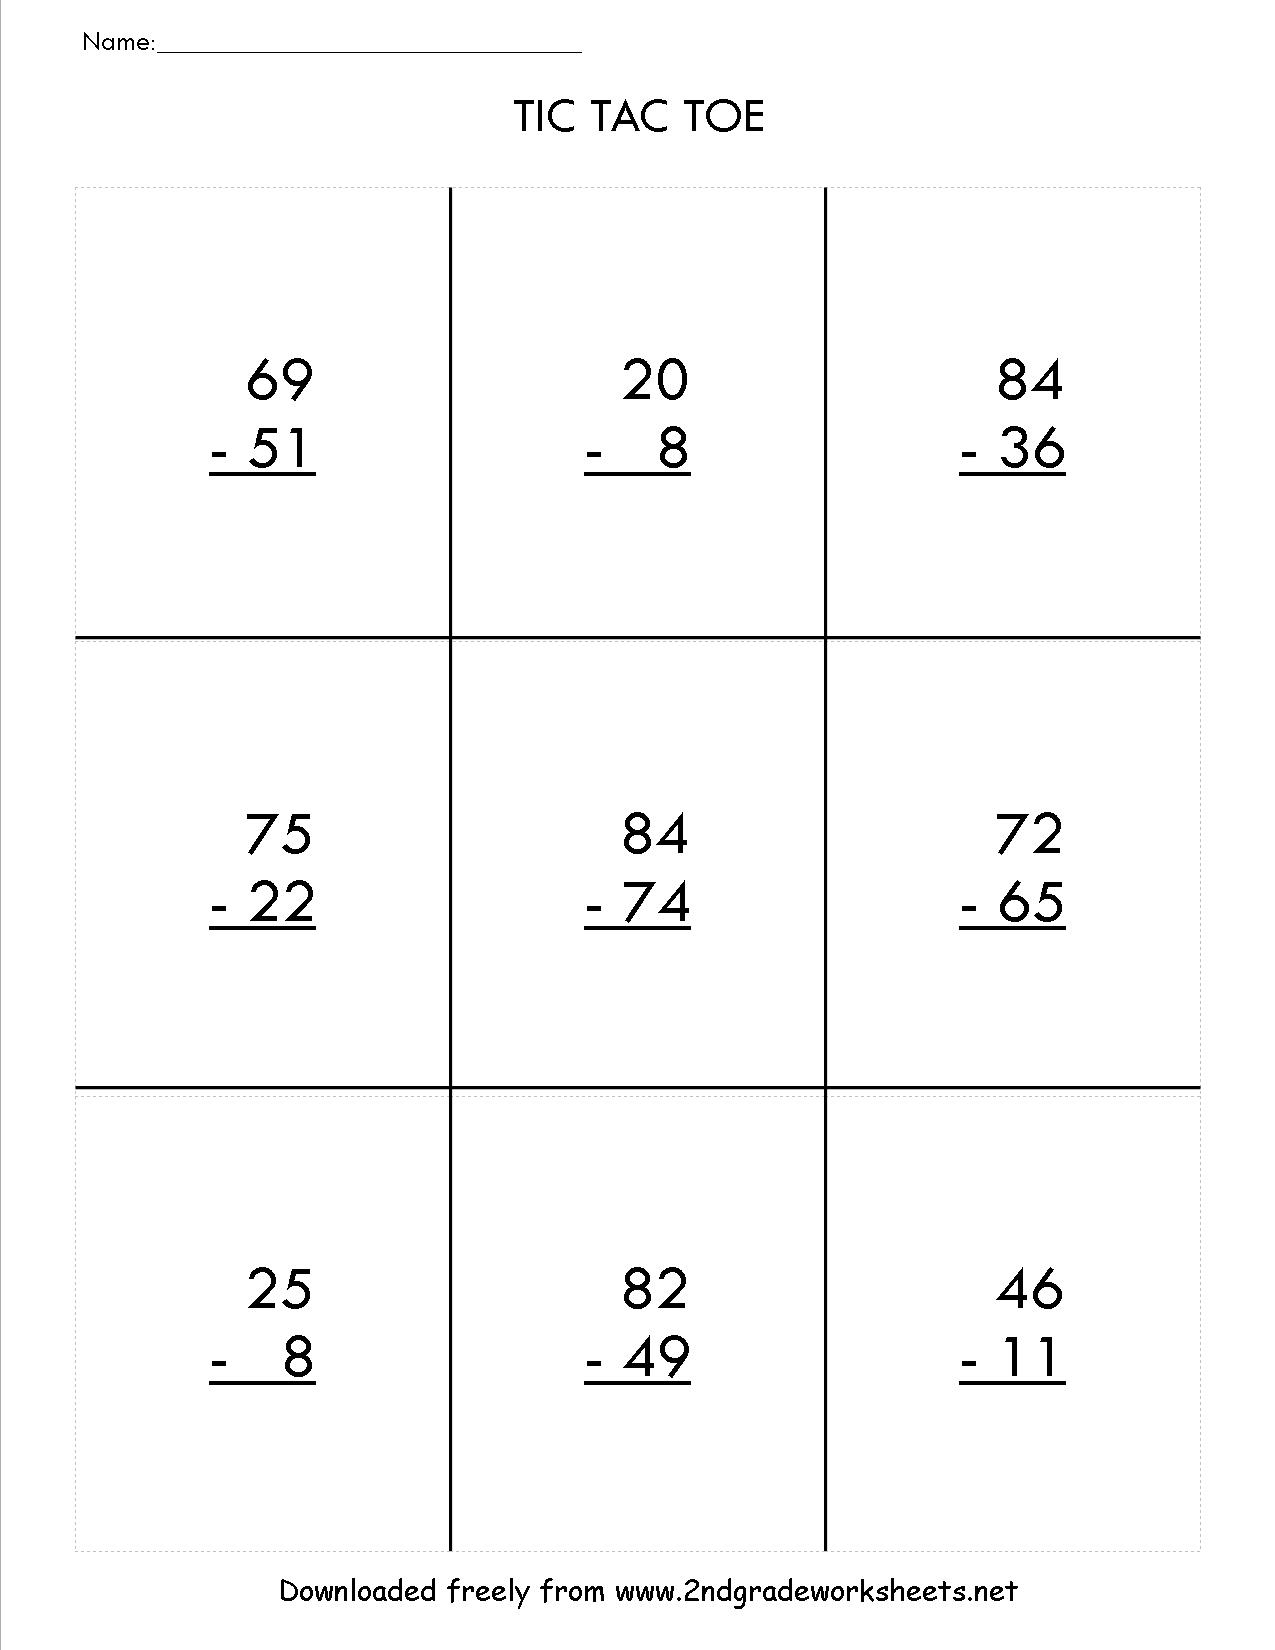 Two Digit Subtraction Worksheets | Printable Subtraction Worksheets With Borrowing